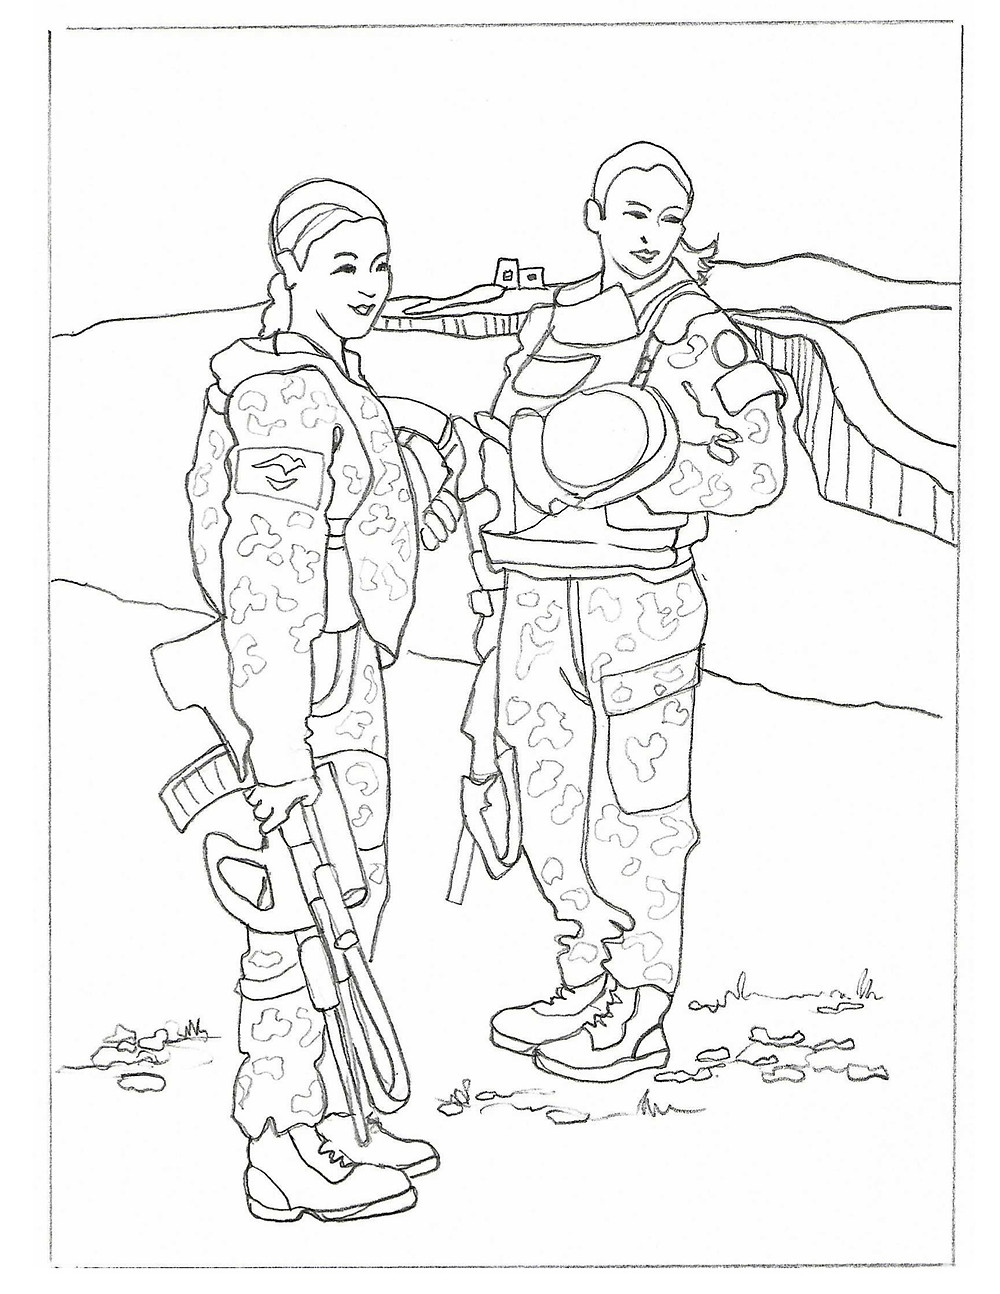 Two Soldiers Beth Law